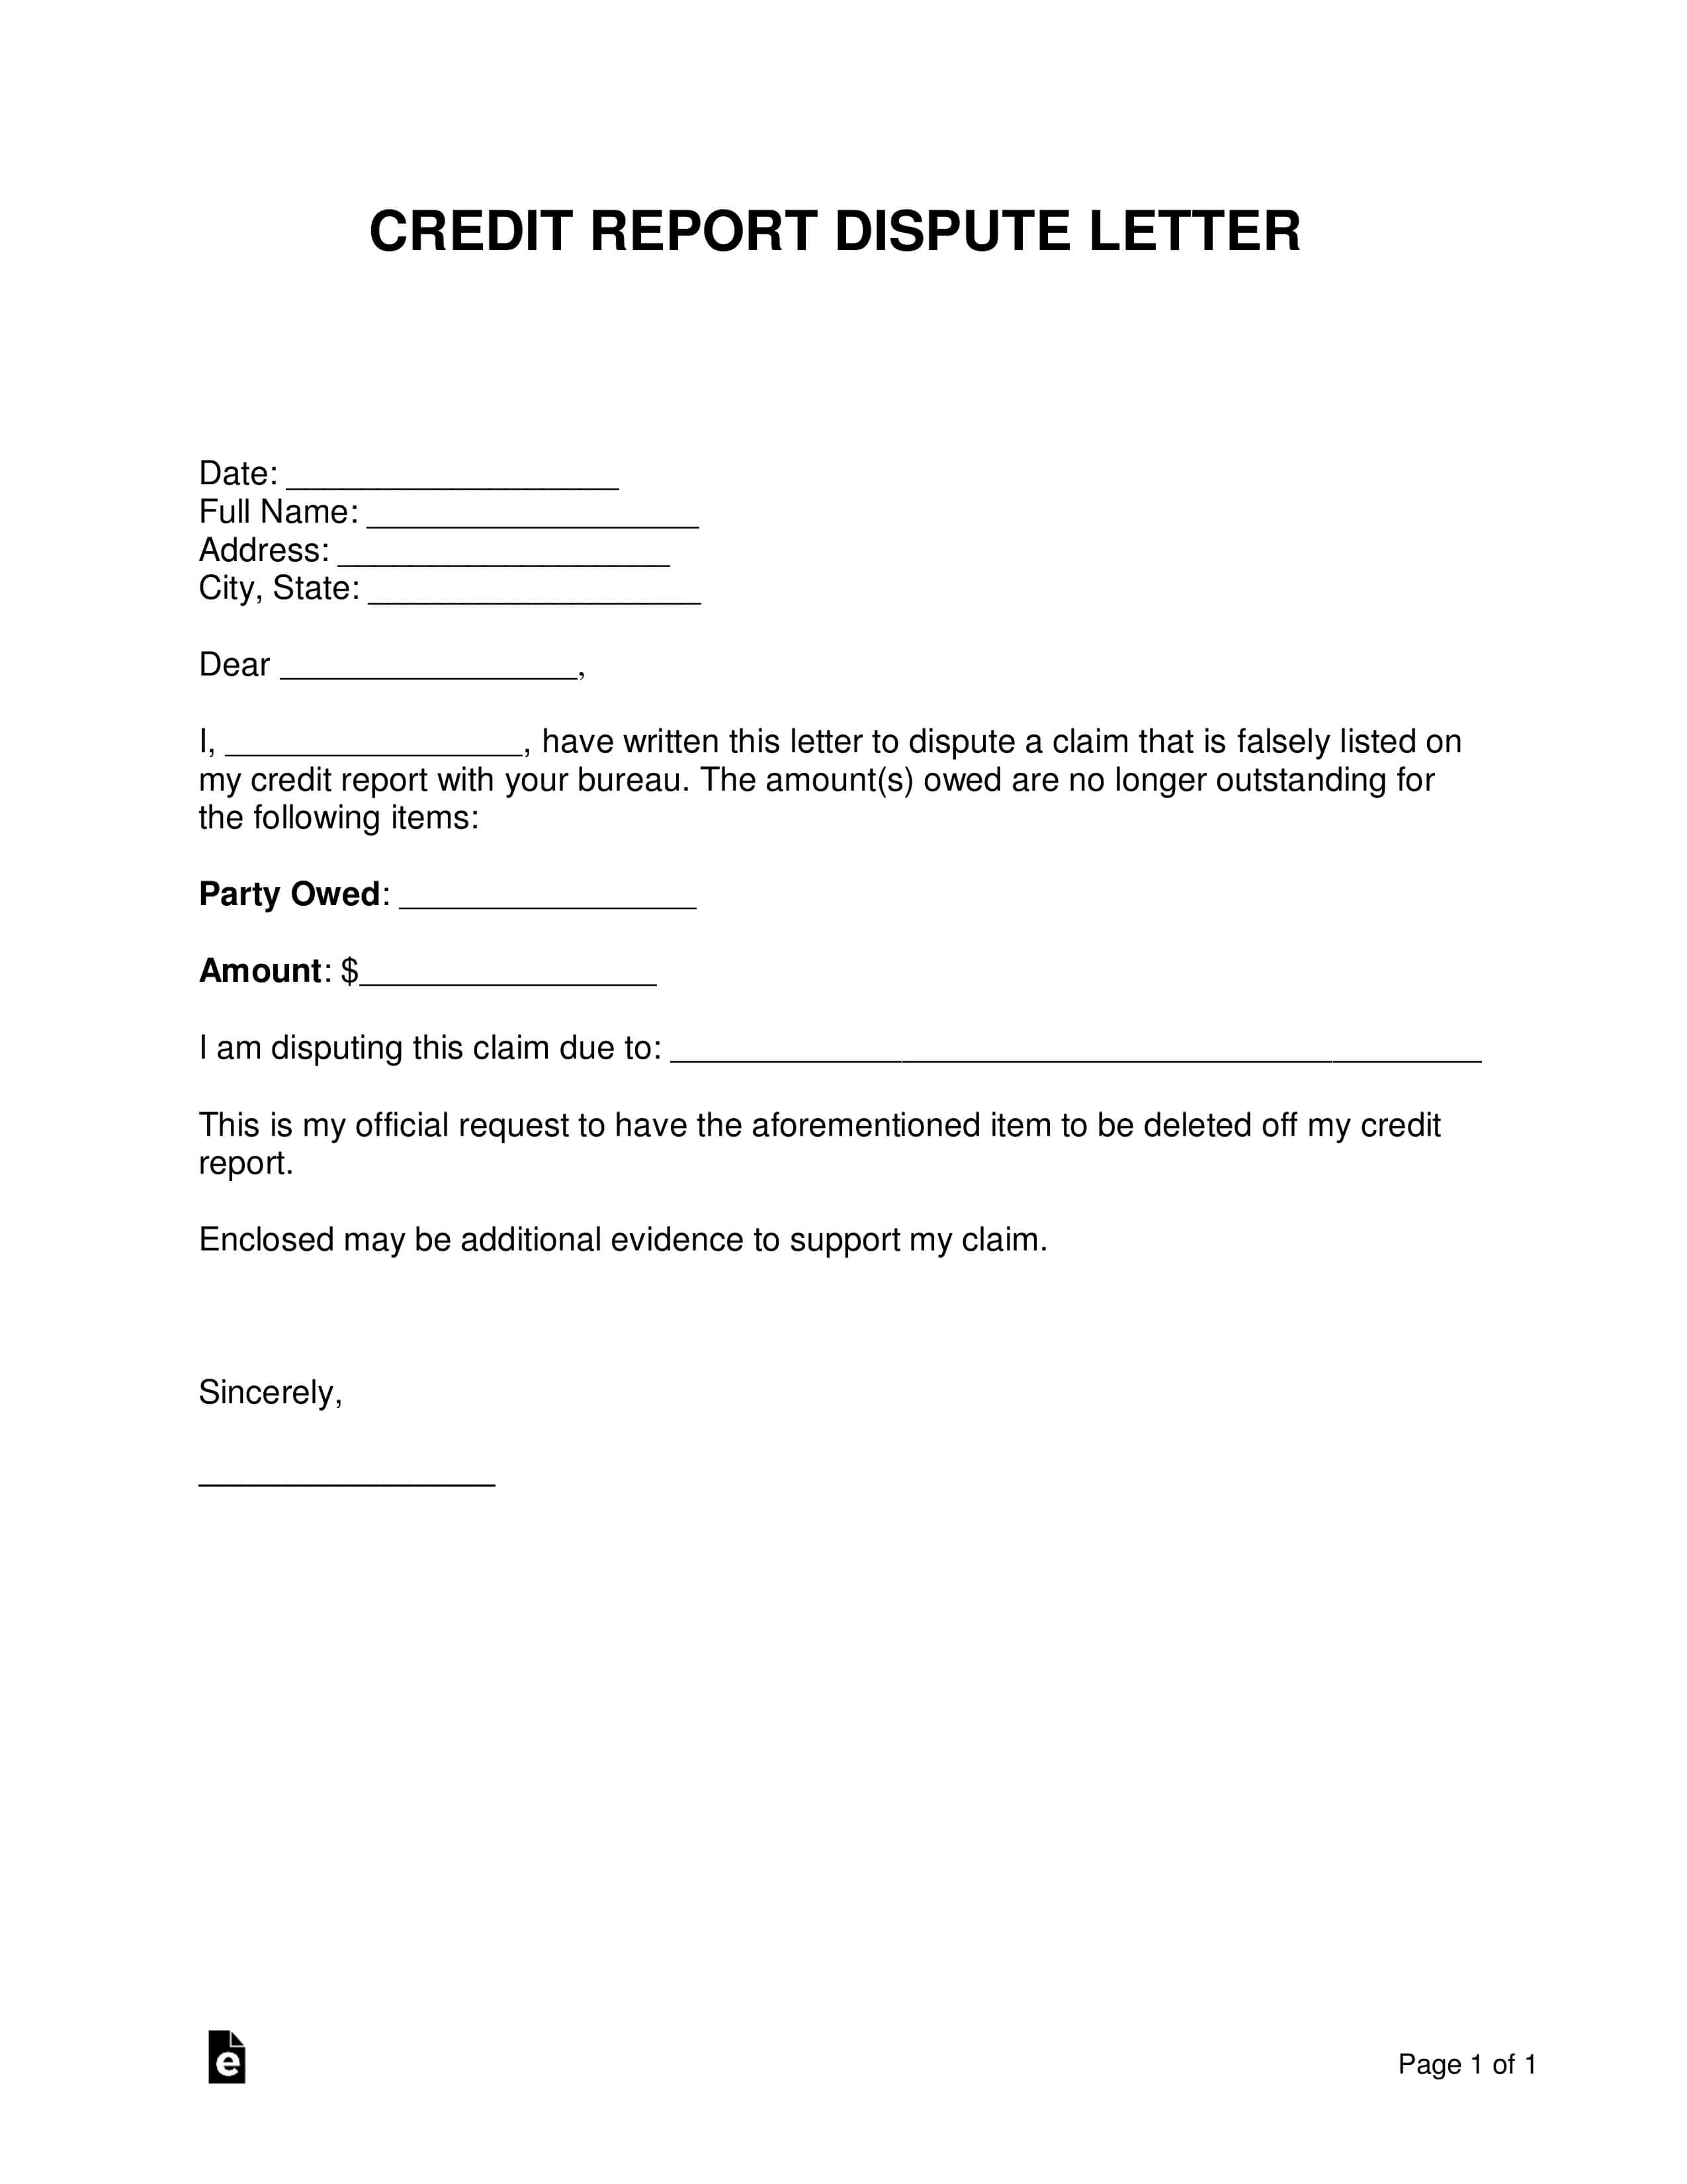 Free Credit Report Dispute Letter Template - Sample - Word pertaining to Credit Report Dispute Letter Template